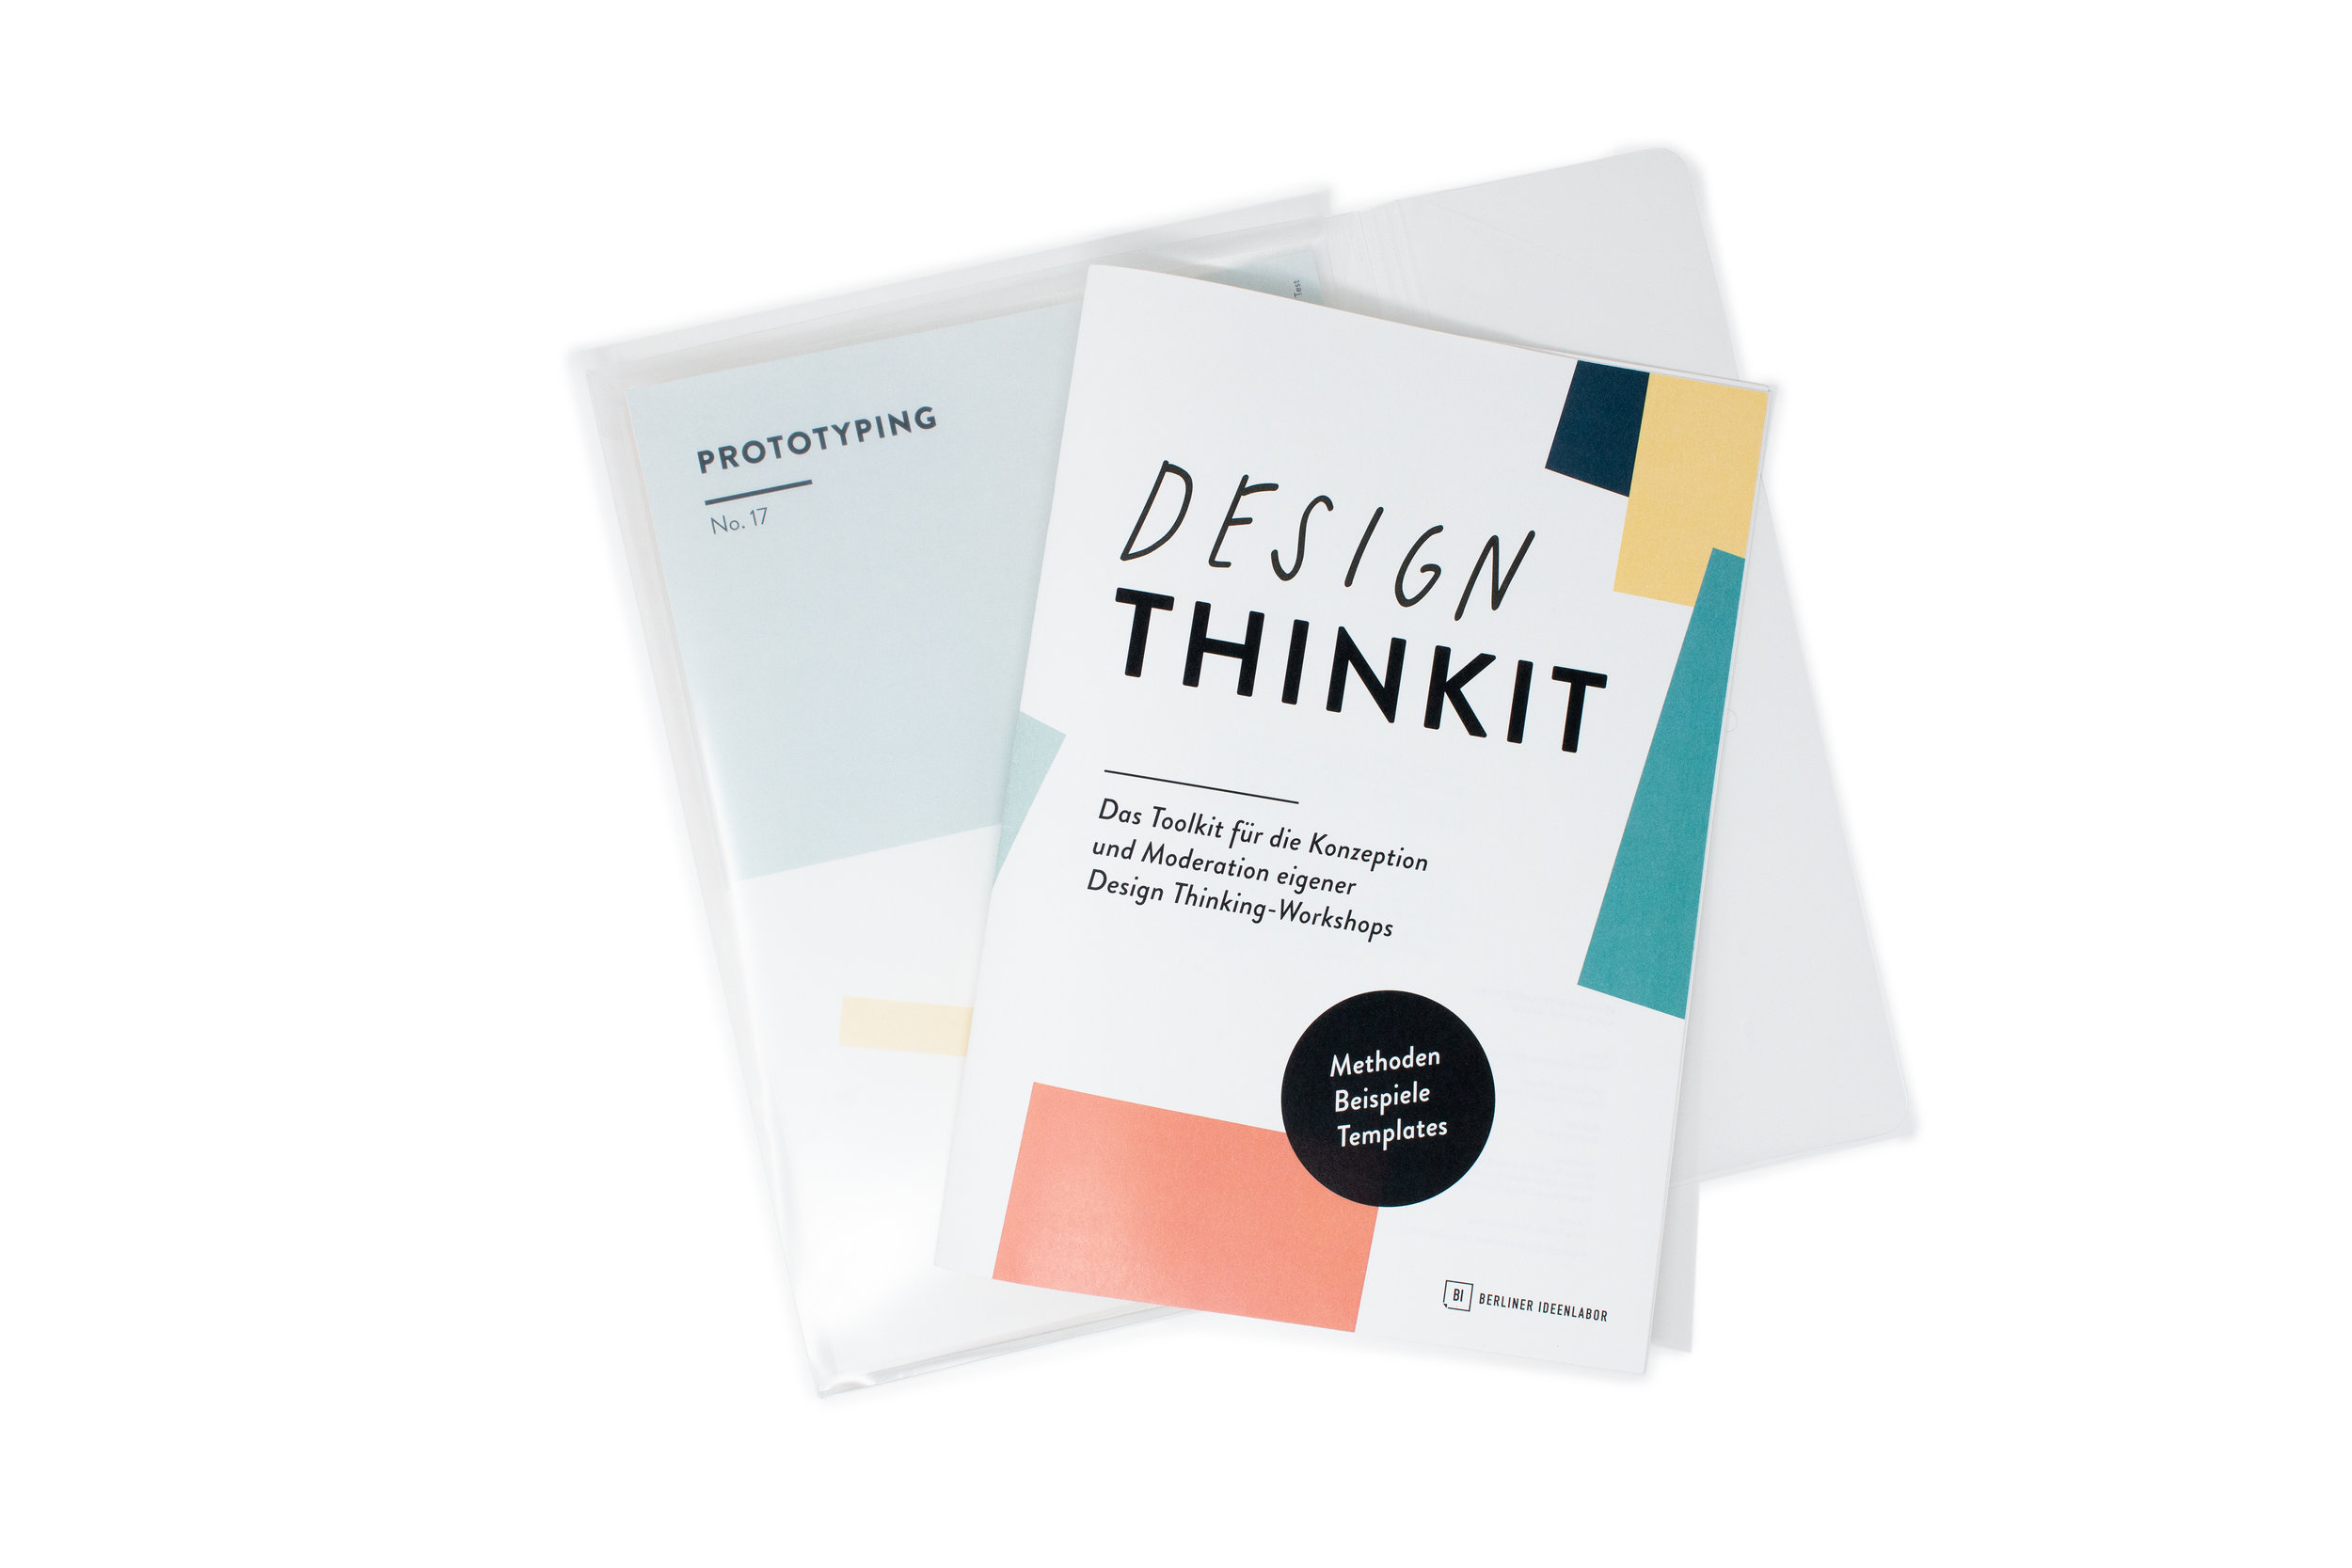 thinkit-cover-aufmappe-mittemplate.jpg